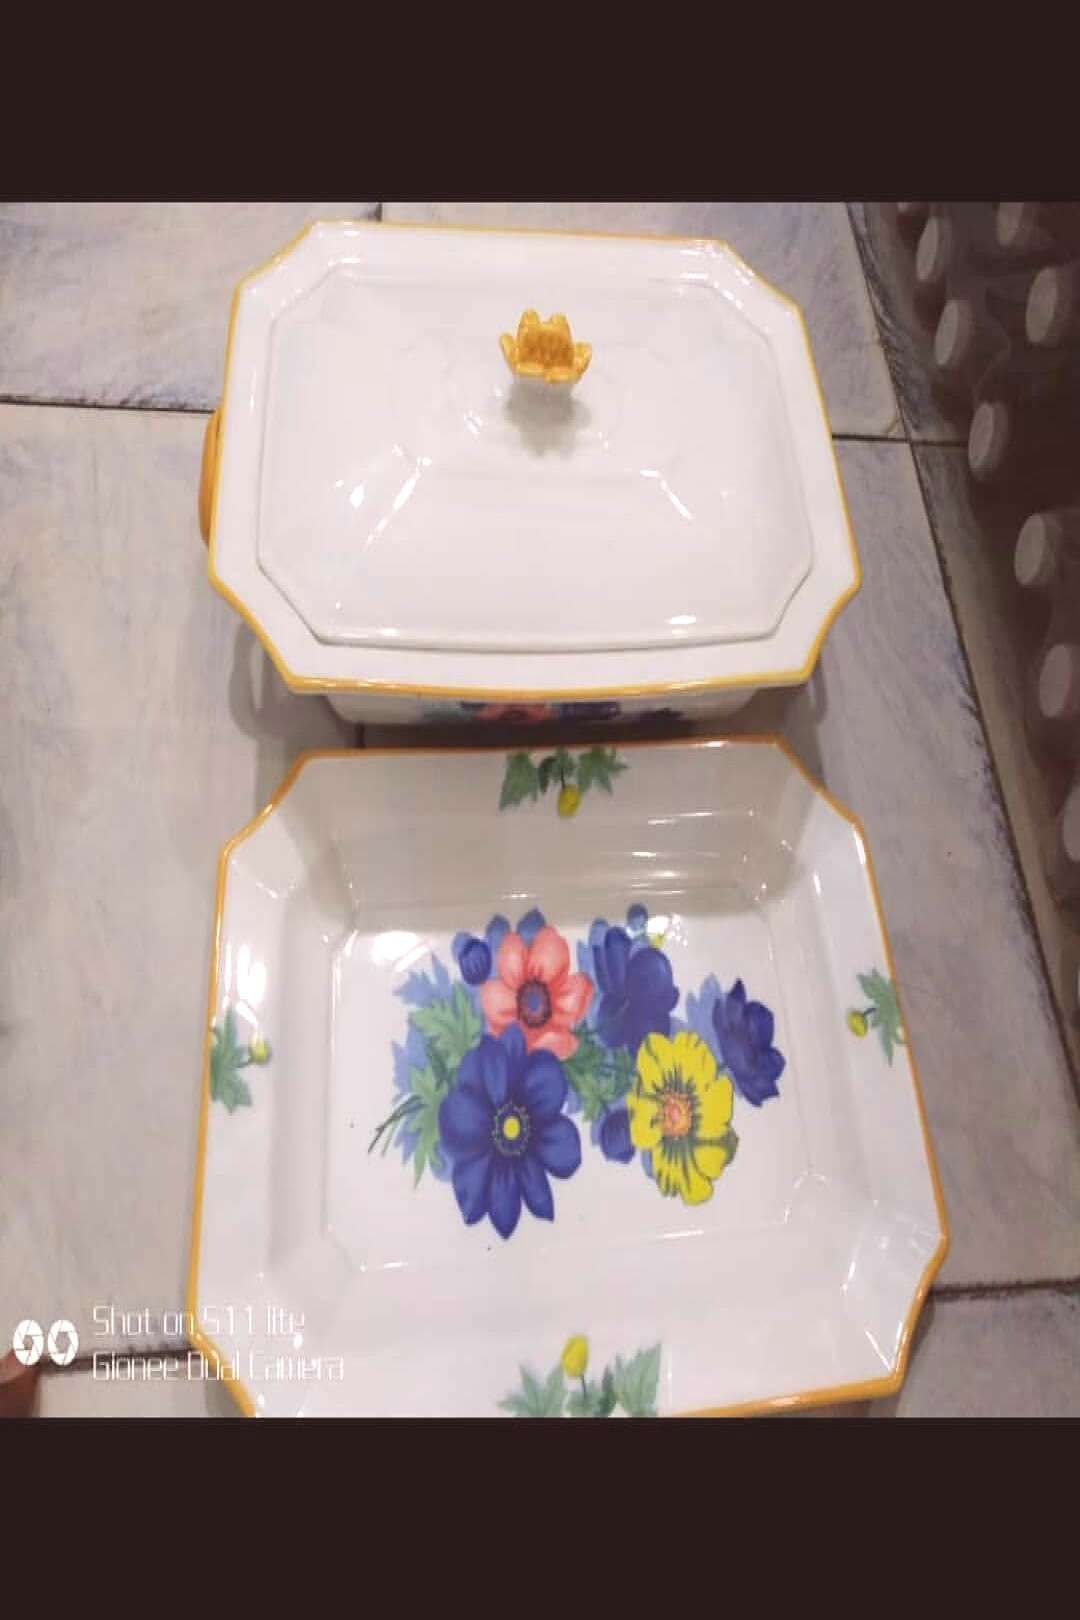 #rectangular #appliances #casserole #january #kitchen #032020 #dishes #photo #these #didnt #gram #ware #make #shop #the These Rectangular Casserole Dishes didn't make it to the gram lasYou ...